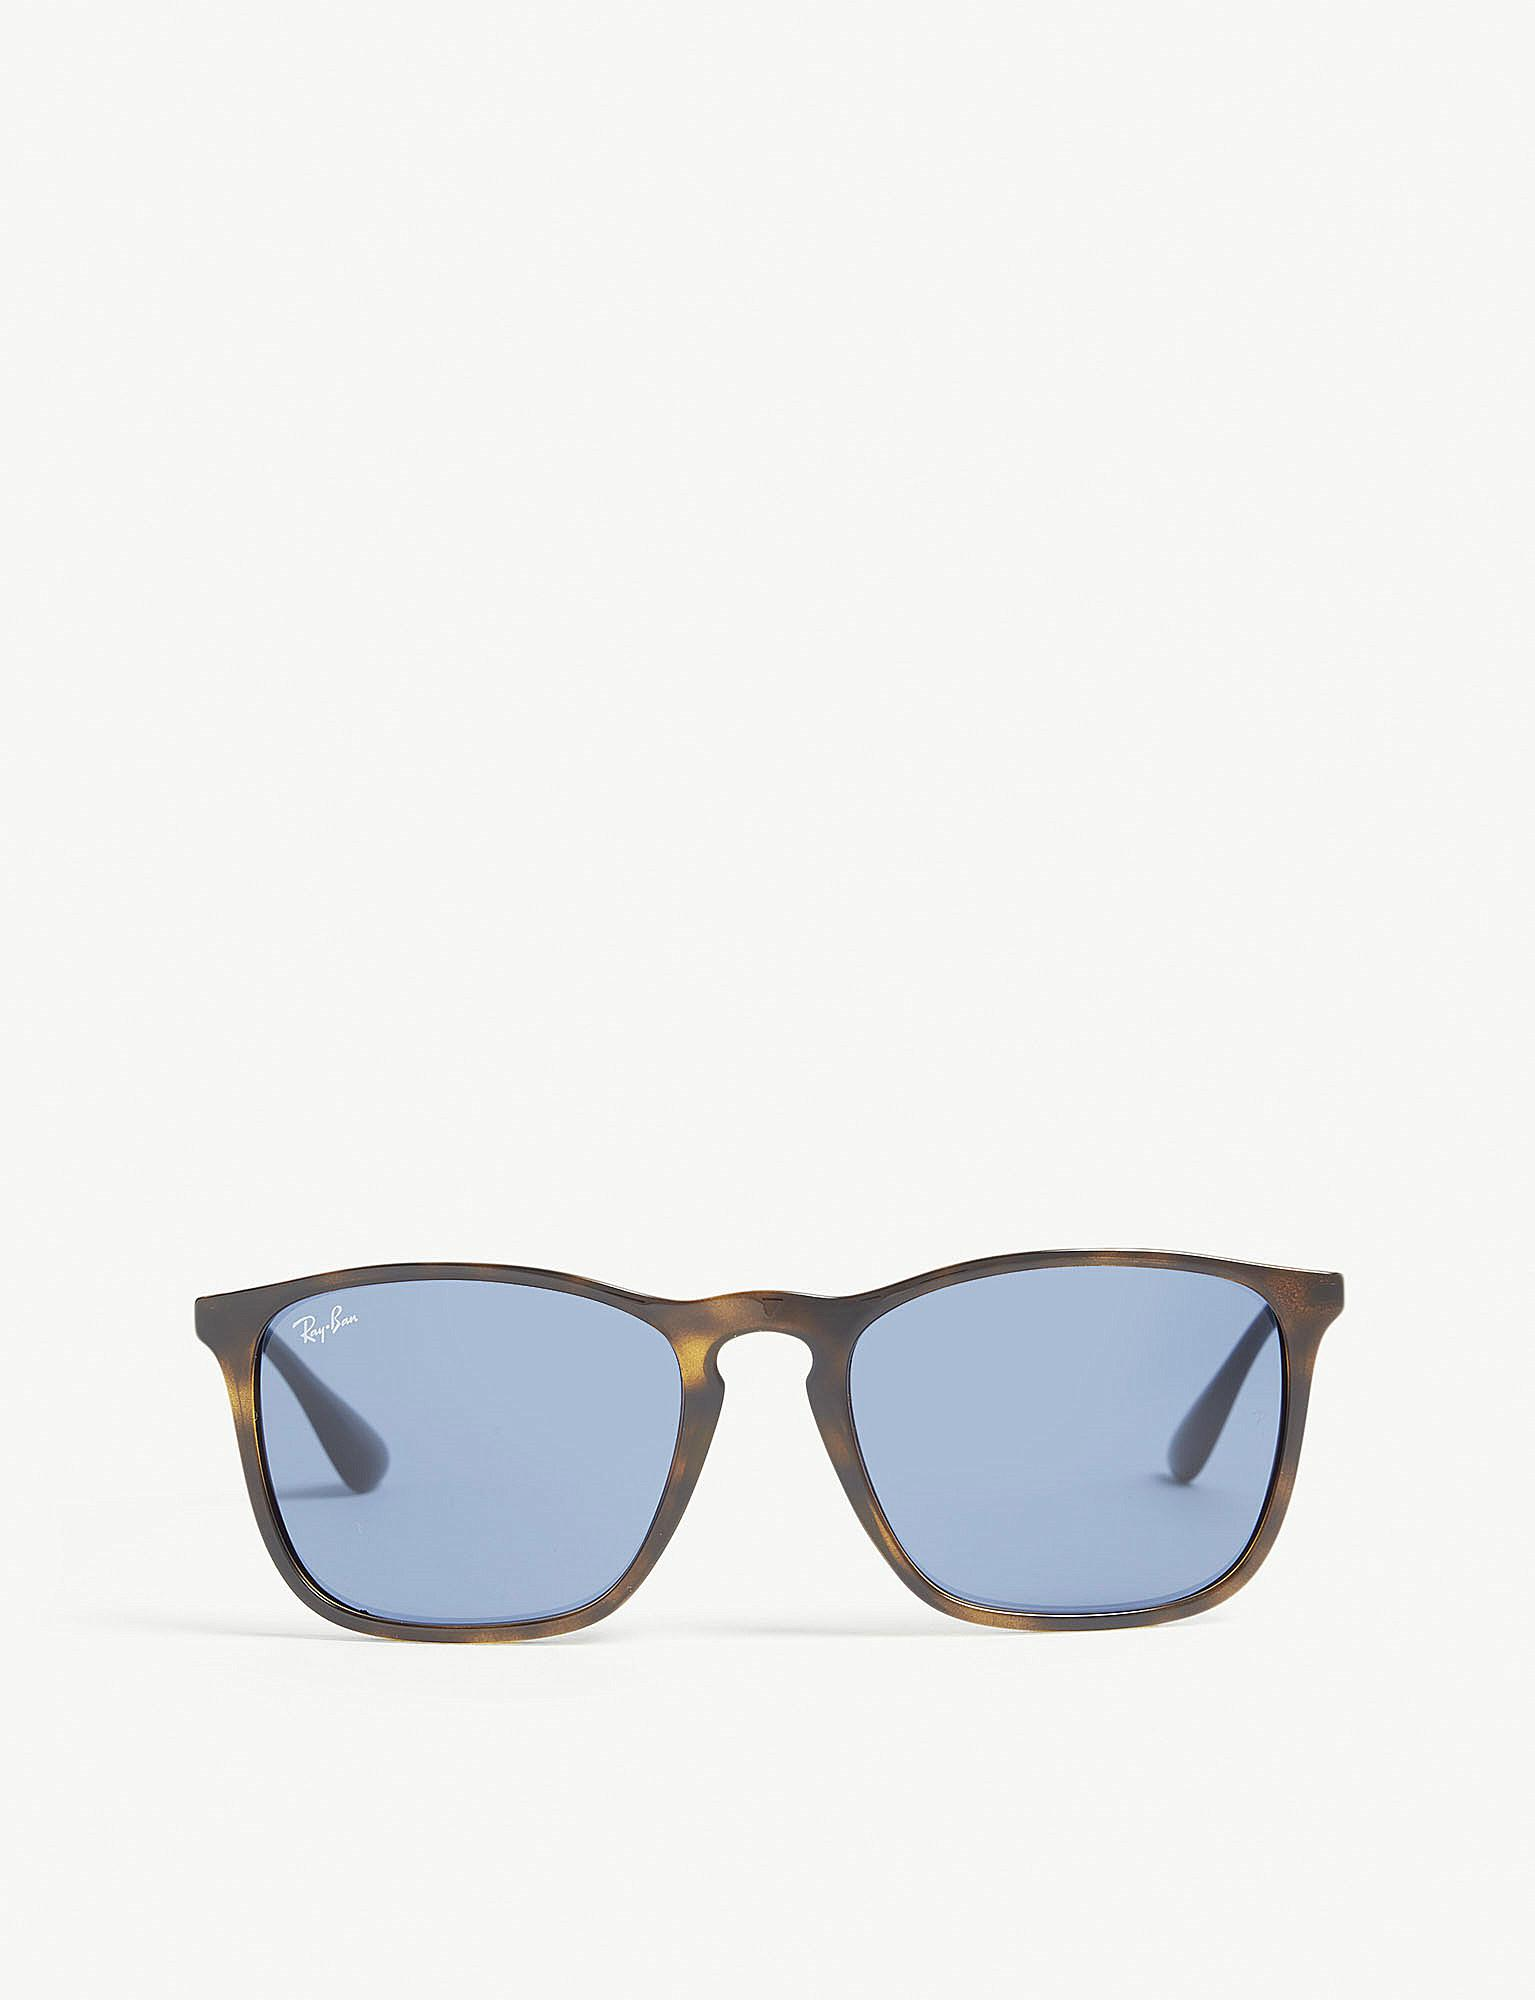 5ad62ccca4 Lyst - Ray-Ban Rb4187 Chris Square-frame Sunglasses in Blue